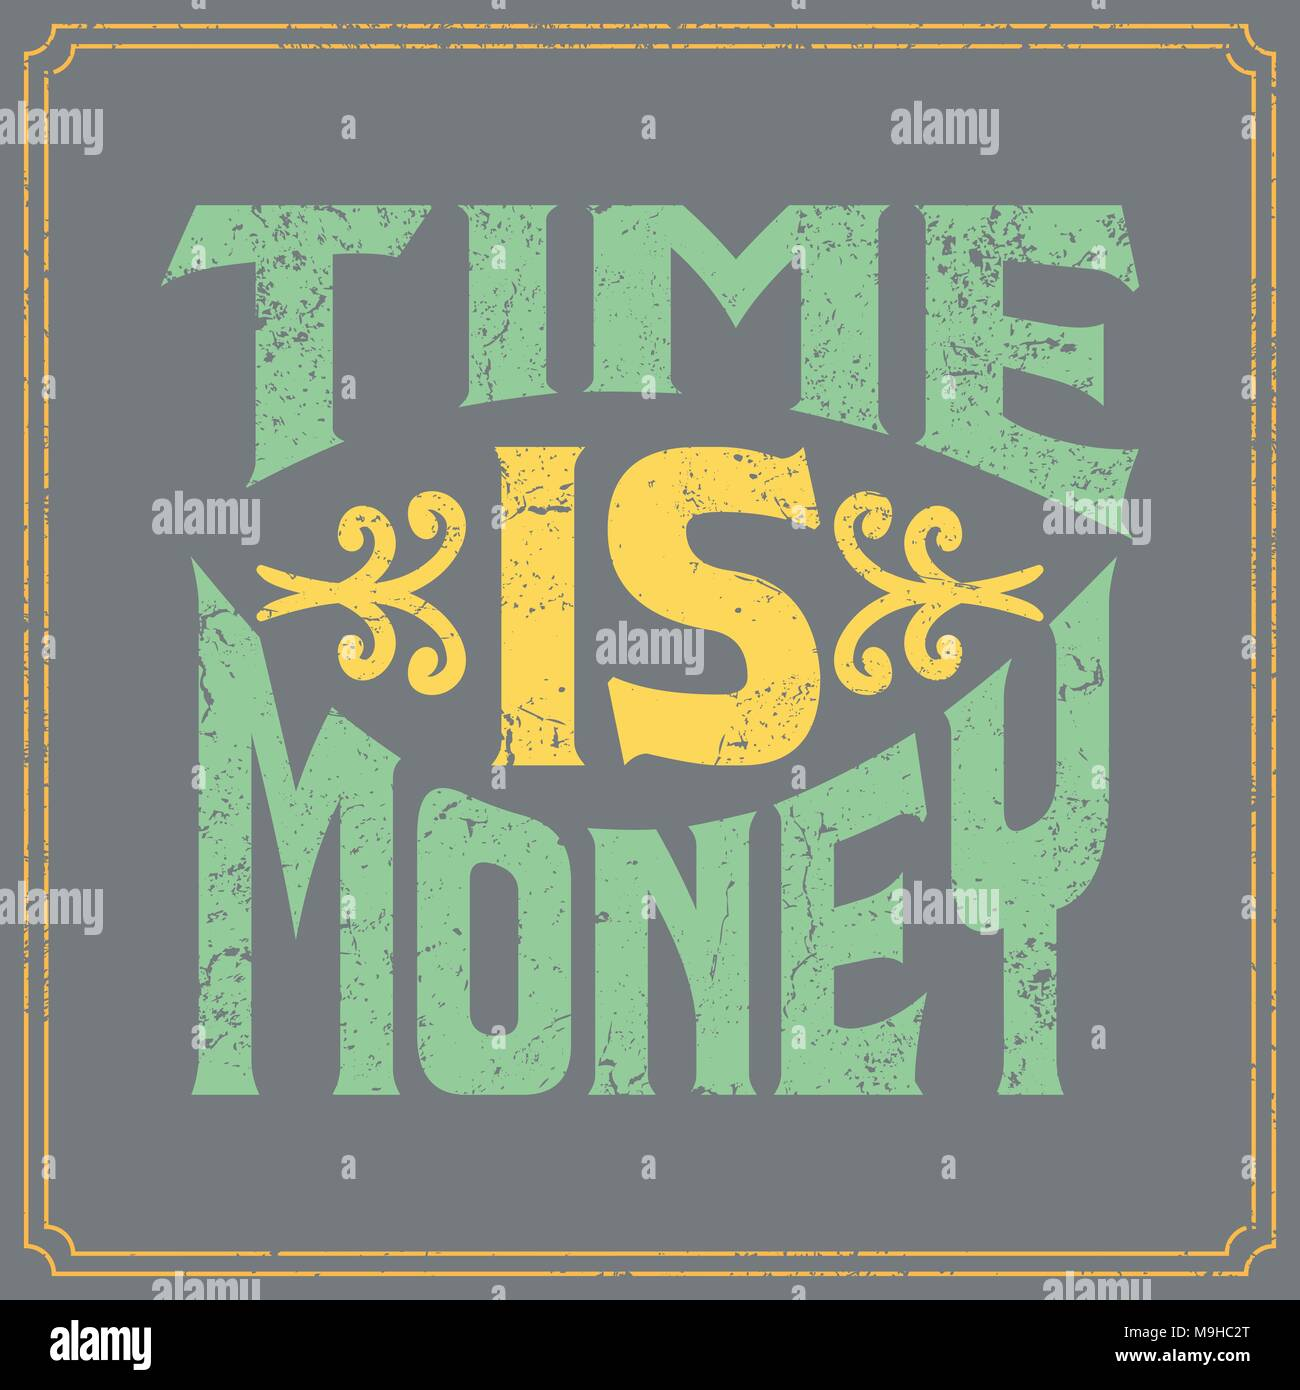 Typographic Designed English Sayings in Vintage Posters DesigncQuotations in Vector - Stock Image